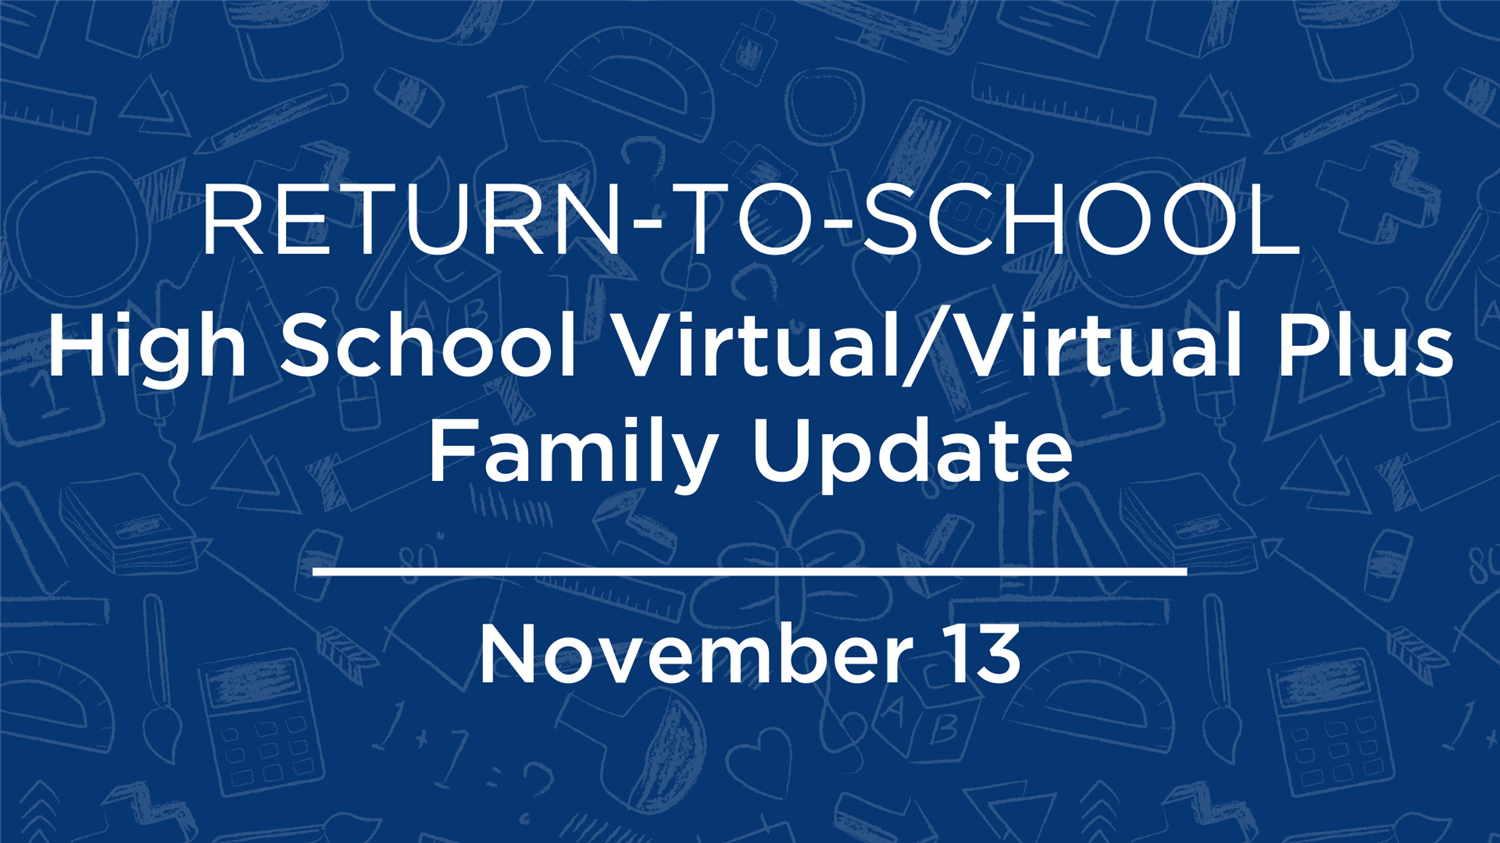 VIDEO: High School Virtual Learning Pathway Overview